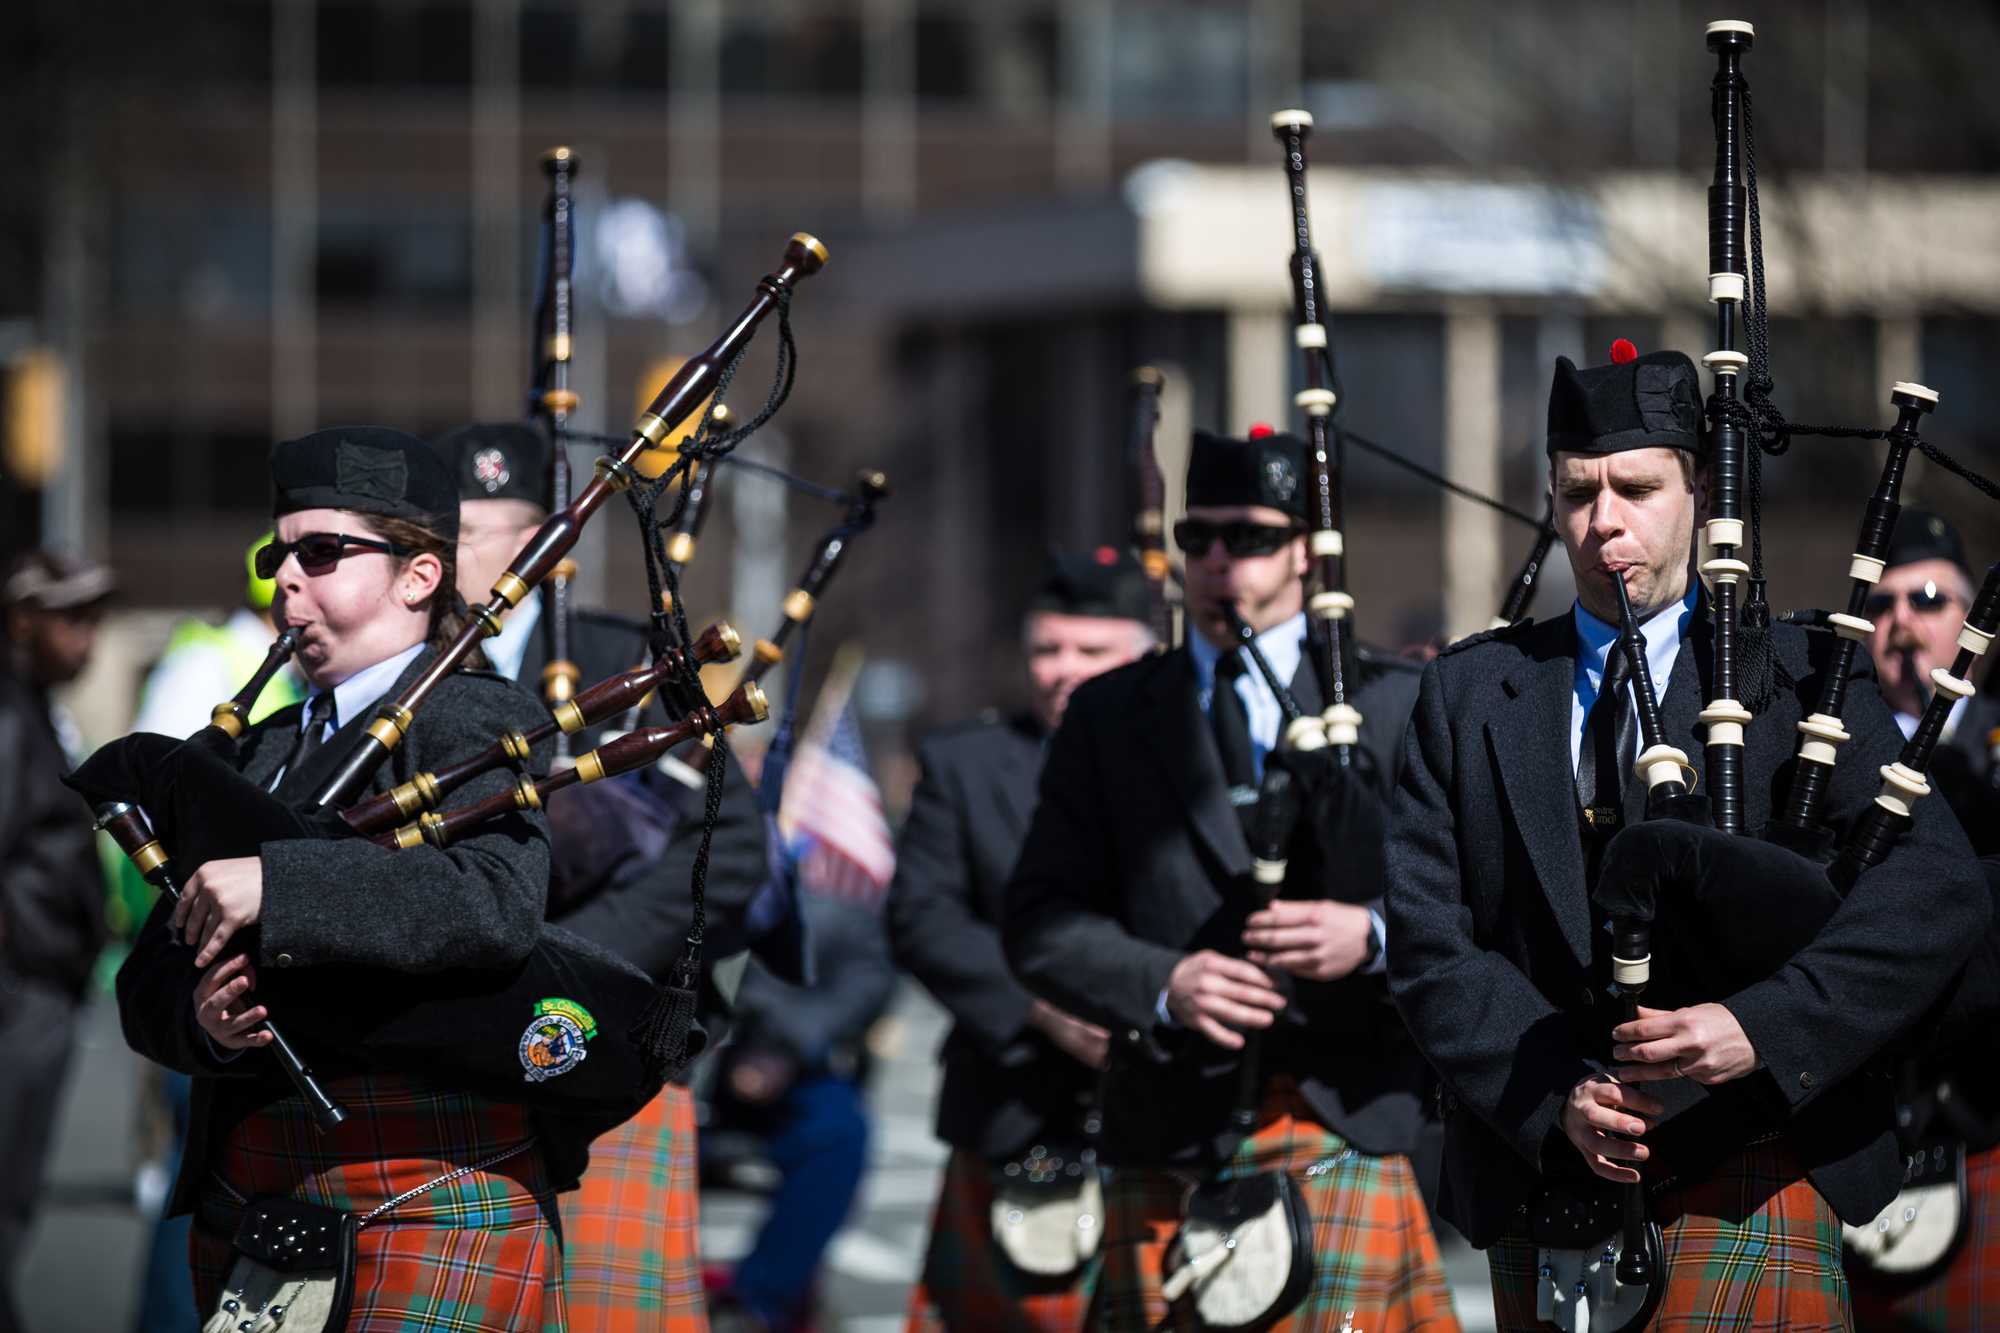 Discounts for World Pipe Band Champs! Ambassador Hotel Glasgow